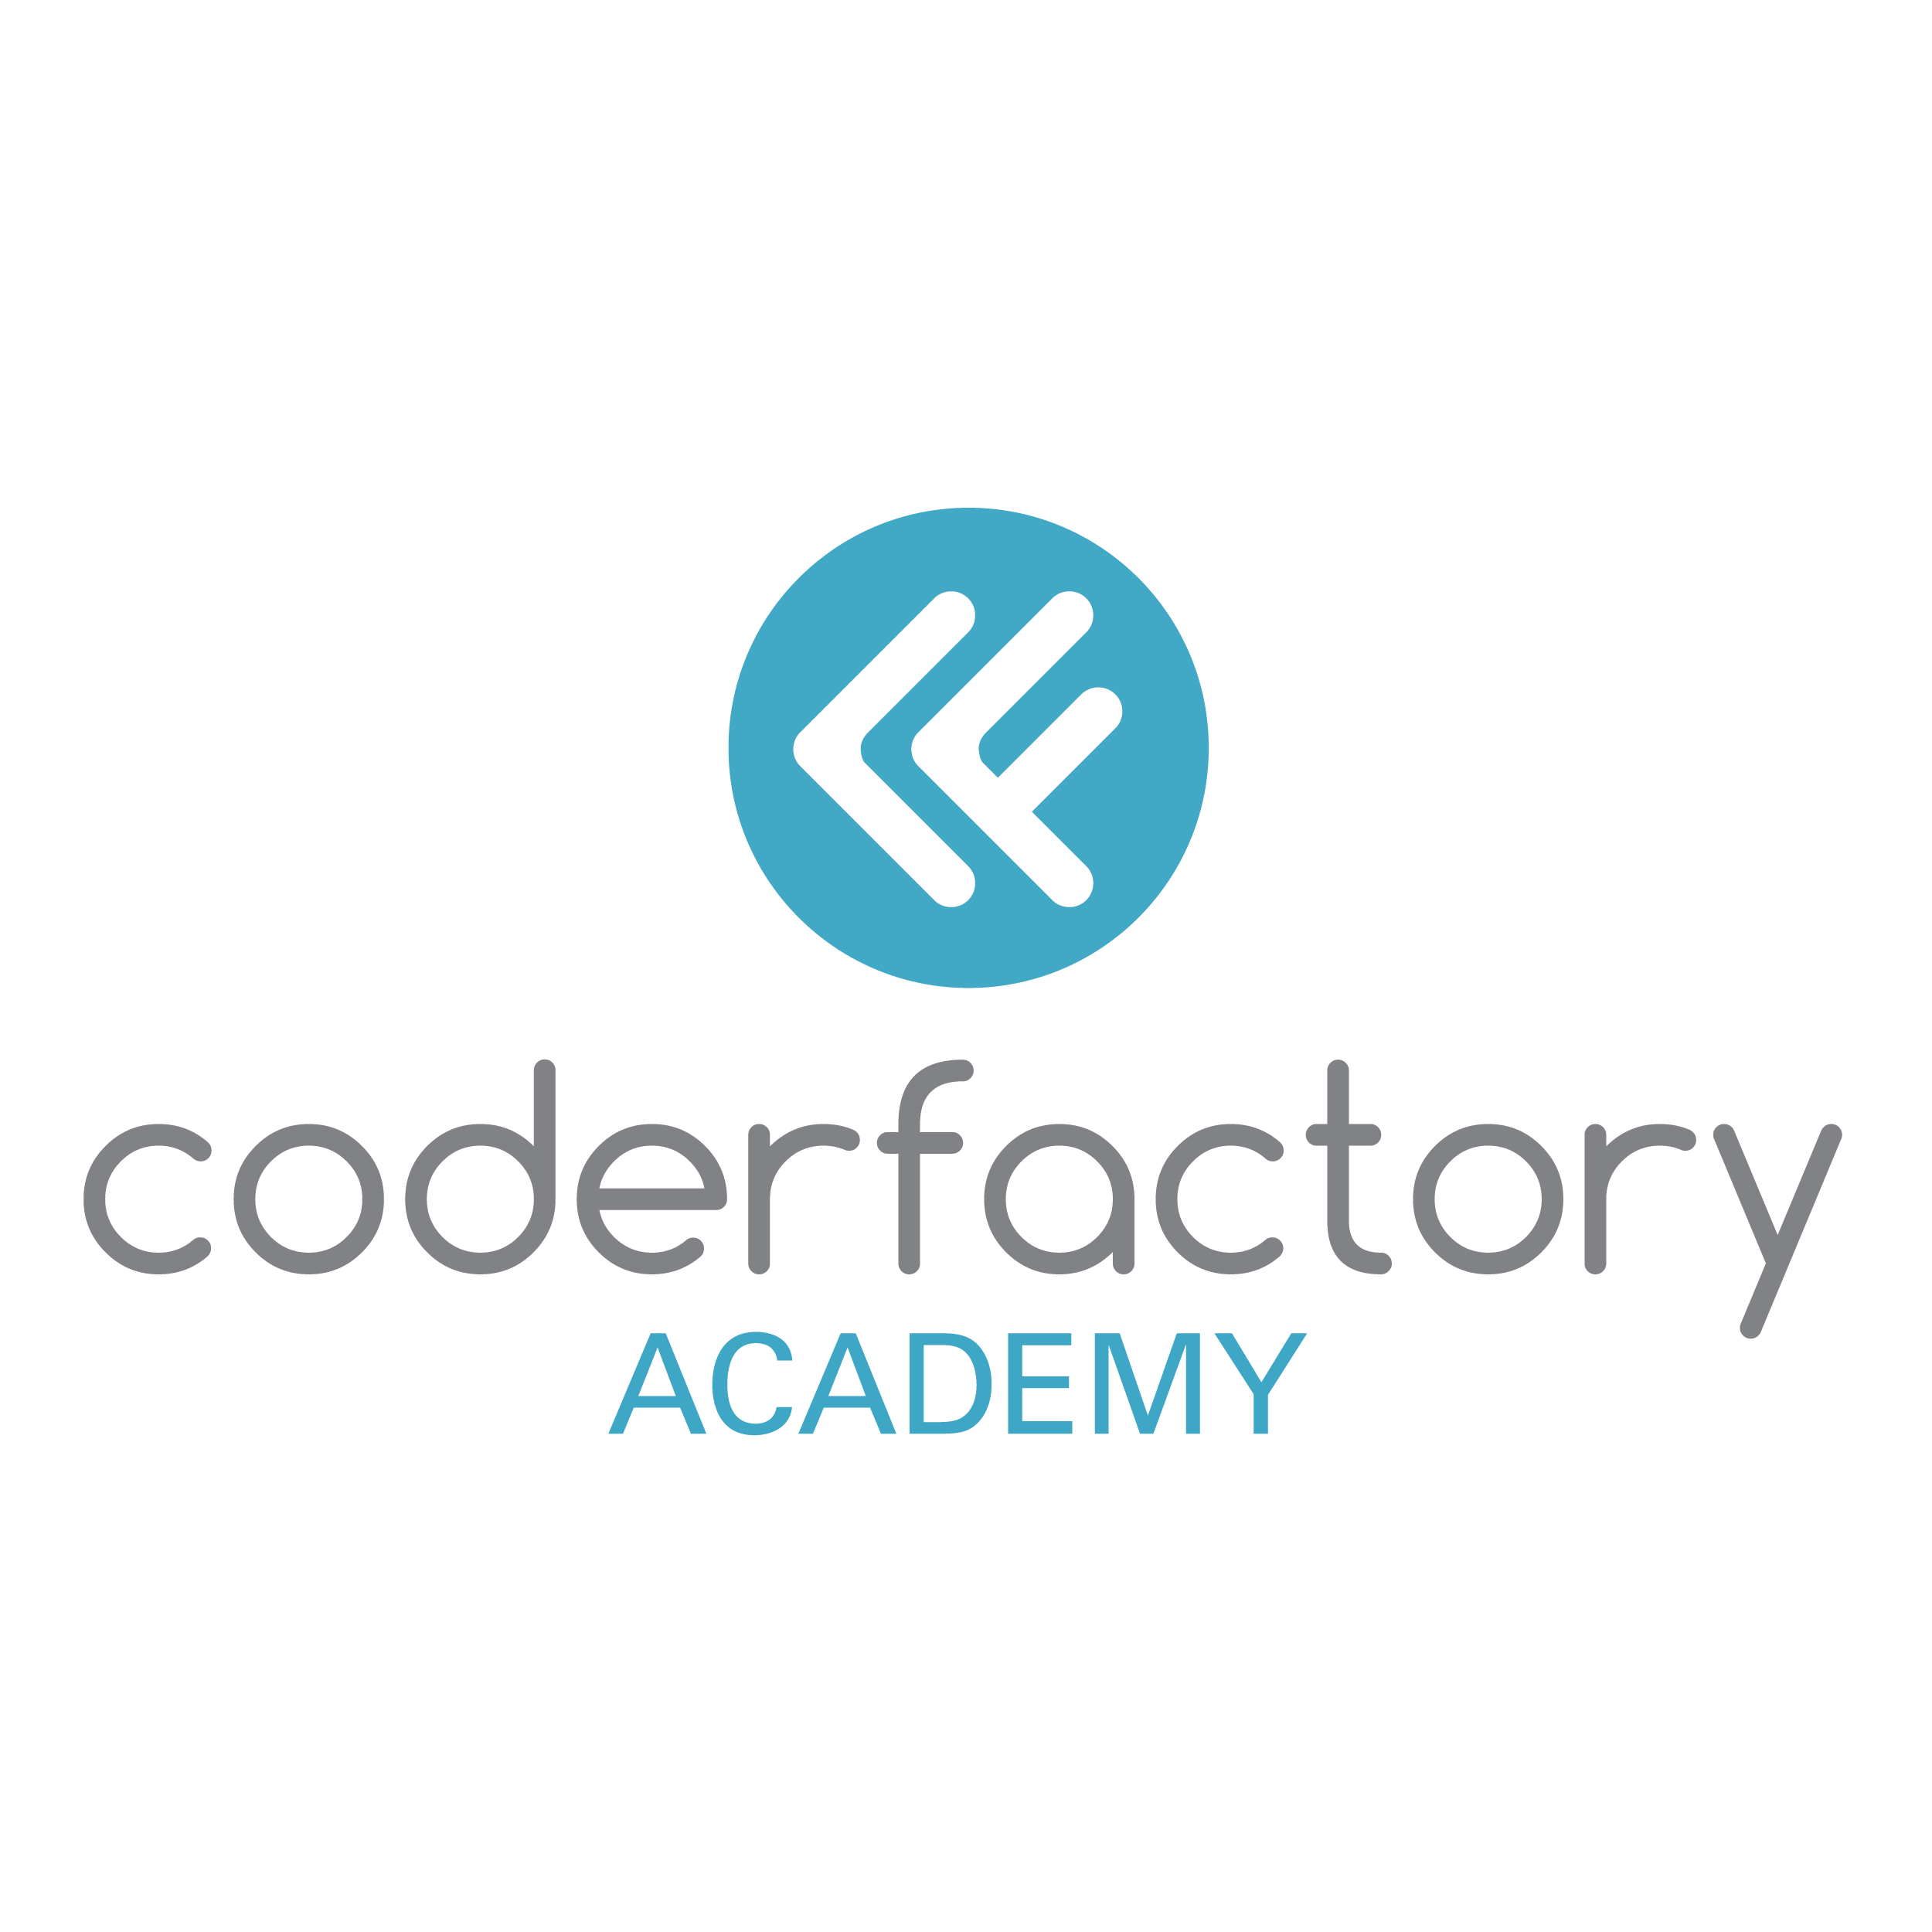 Coderfactory Academy logo